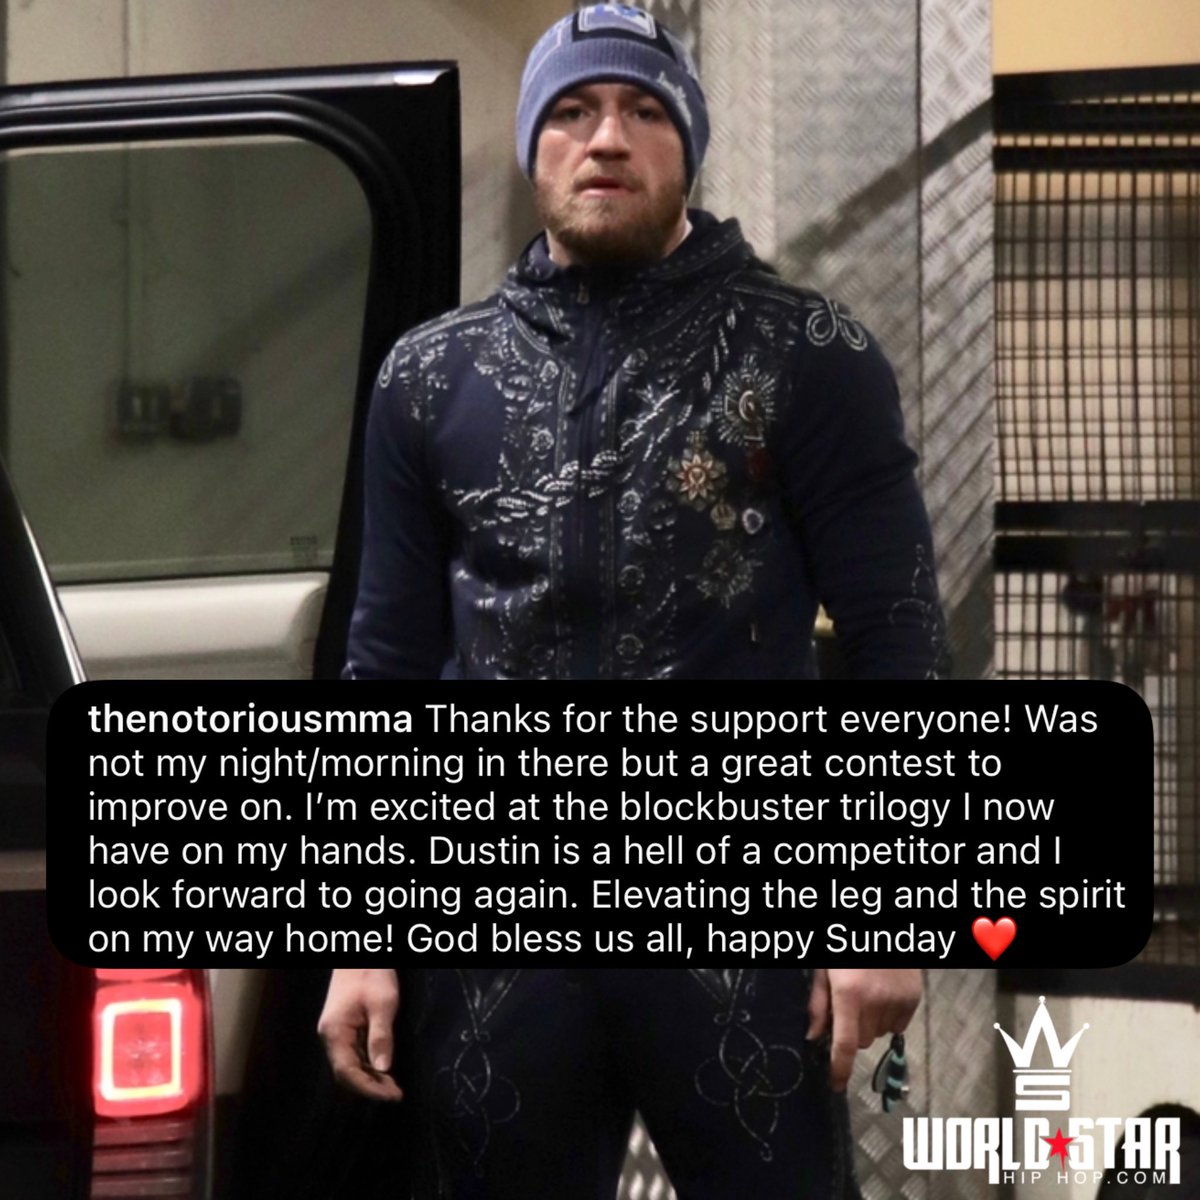 #ConorMcGregor had this to say following his loss to #DustinPoirier last night...🙏 @TheNotoriousMMA